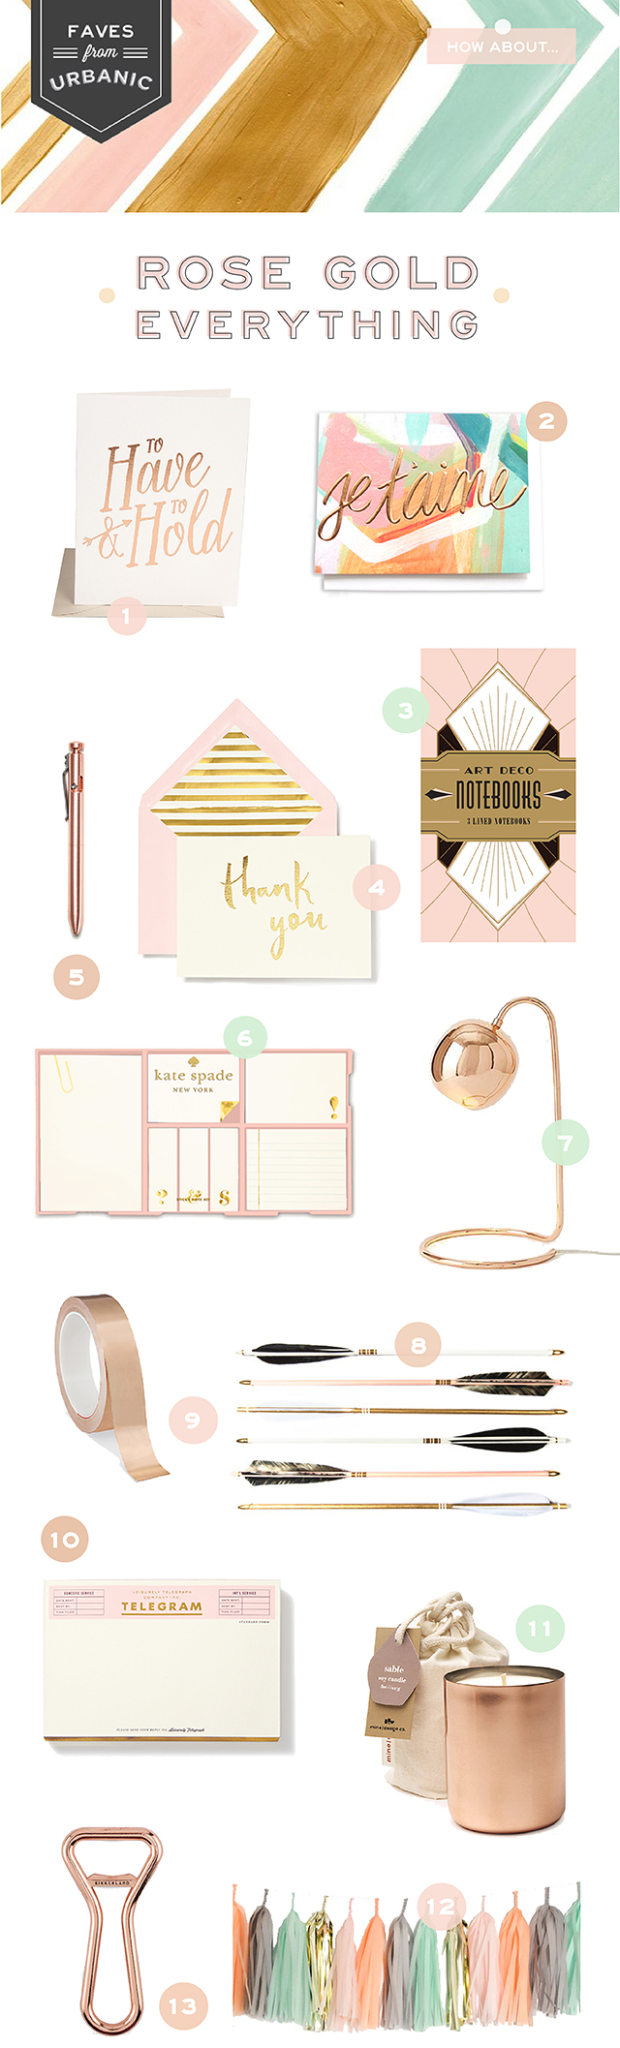 Urbanic-Faves-Rose-Gold-Everything-OSBP